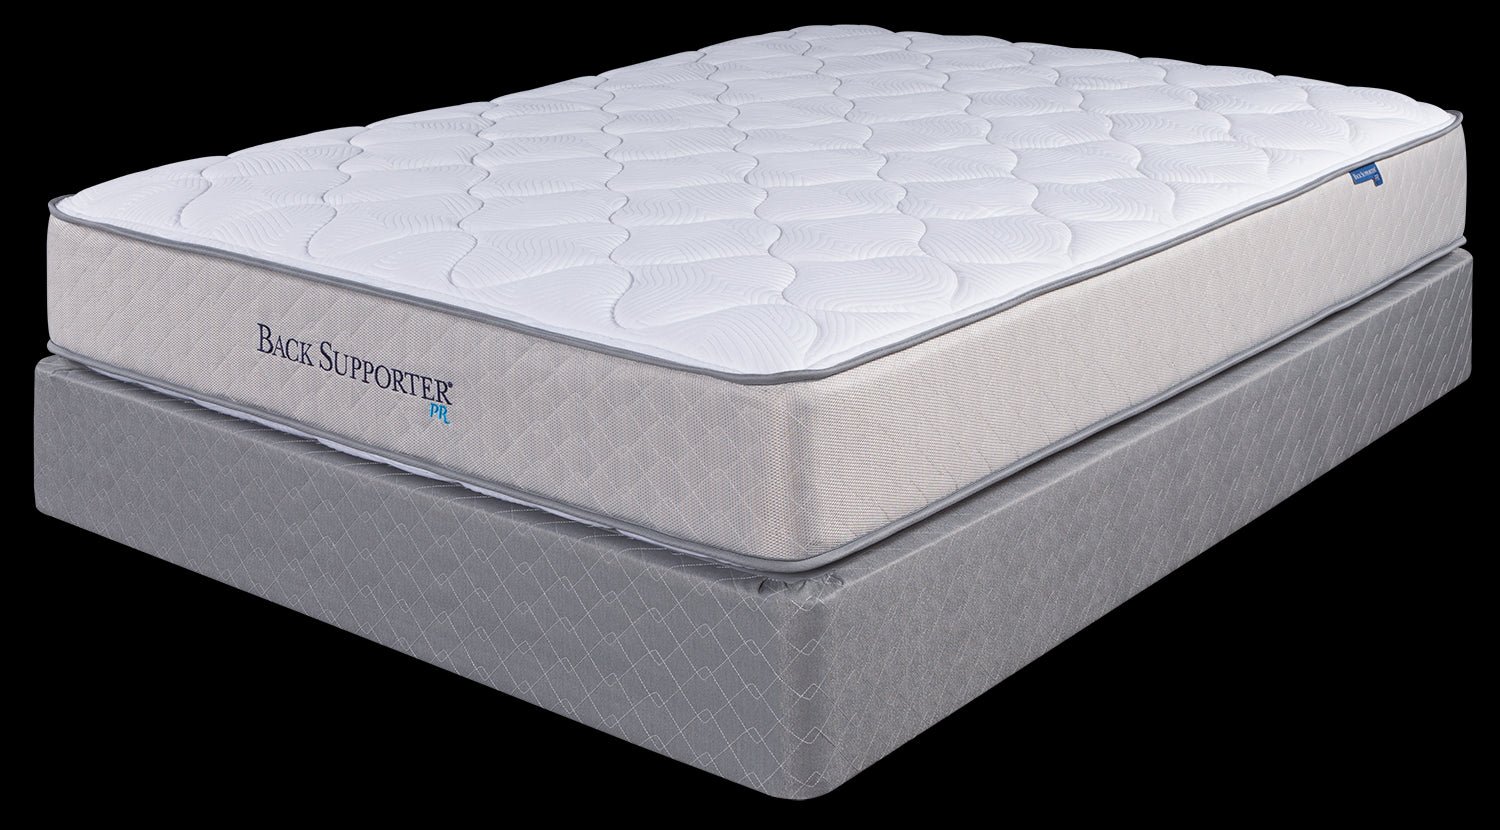 Spring Air Queen Plush Dual Sided Back Support Mattress Set